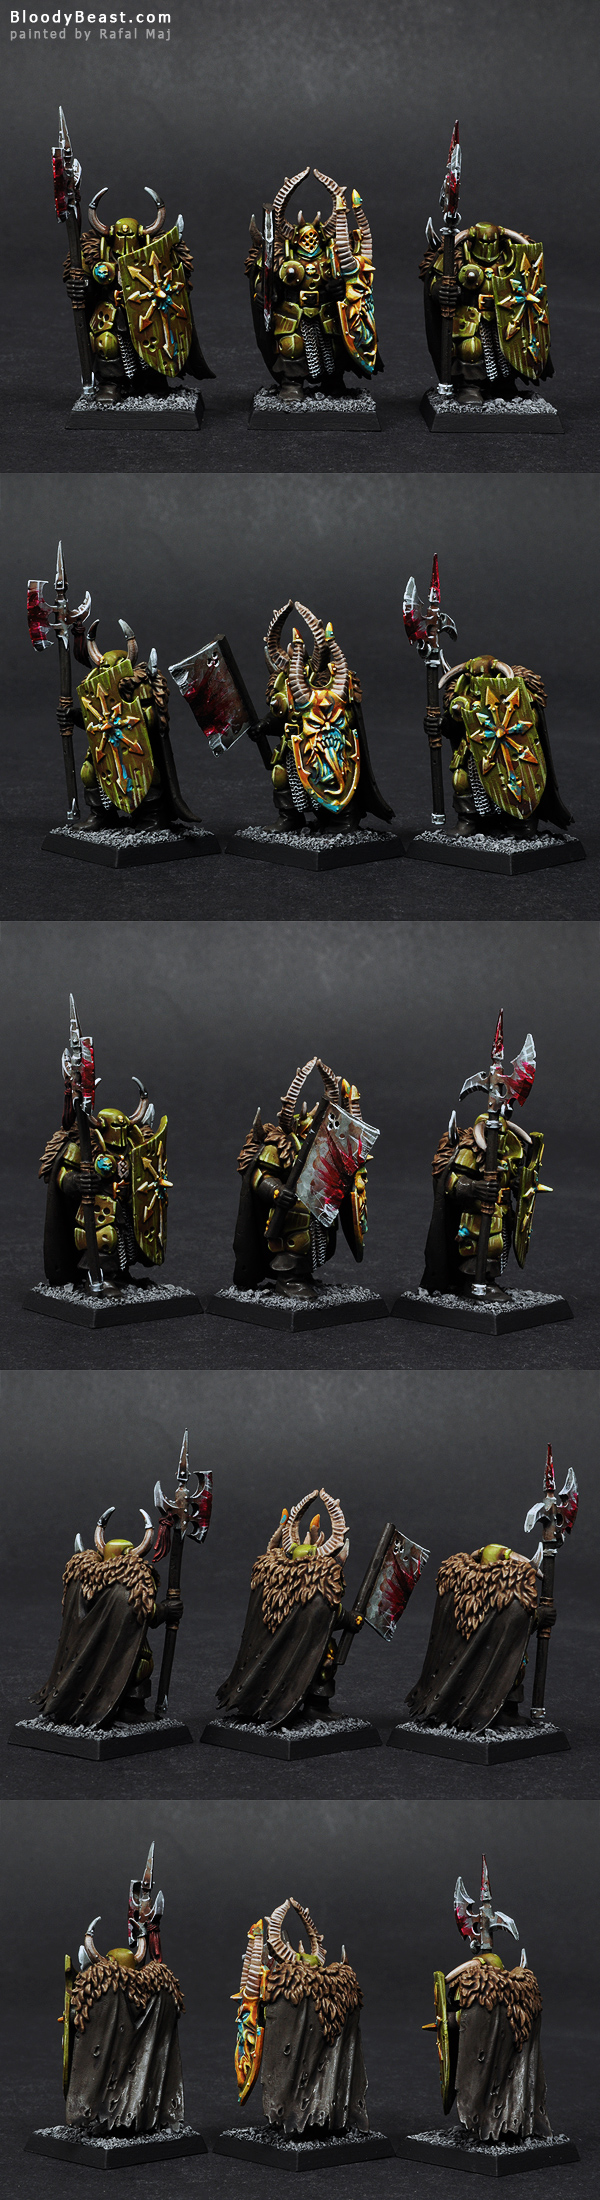 Nurgle Warriors of Chaos painted by Rafal Maj (BloodyBeast.com)